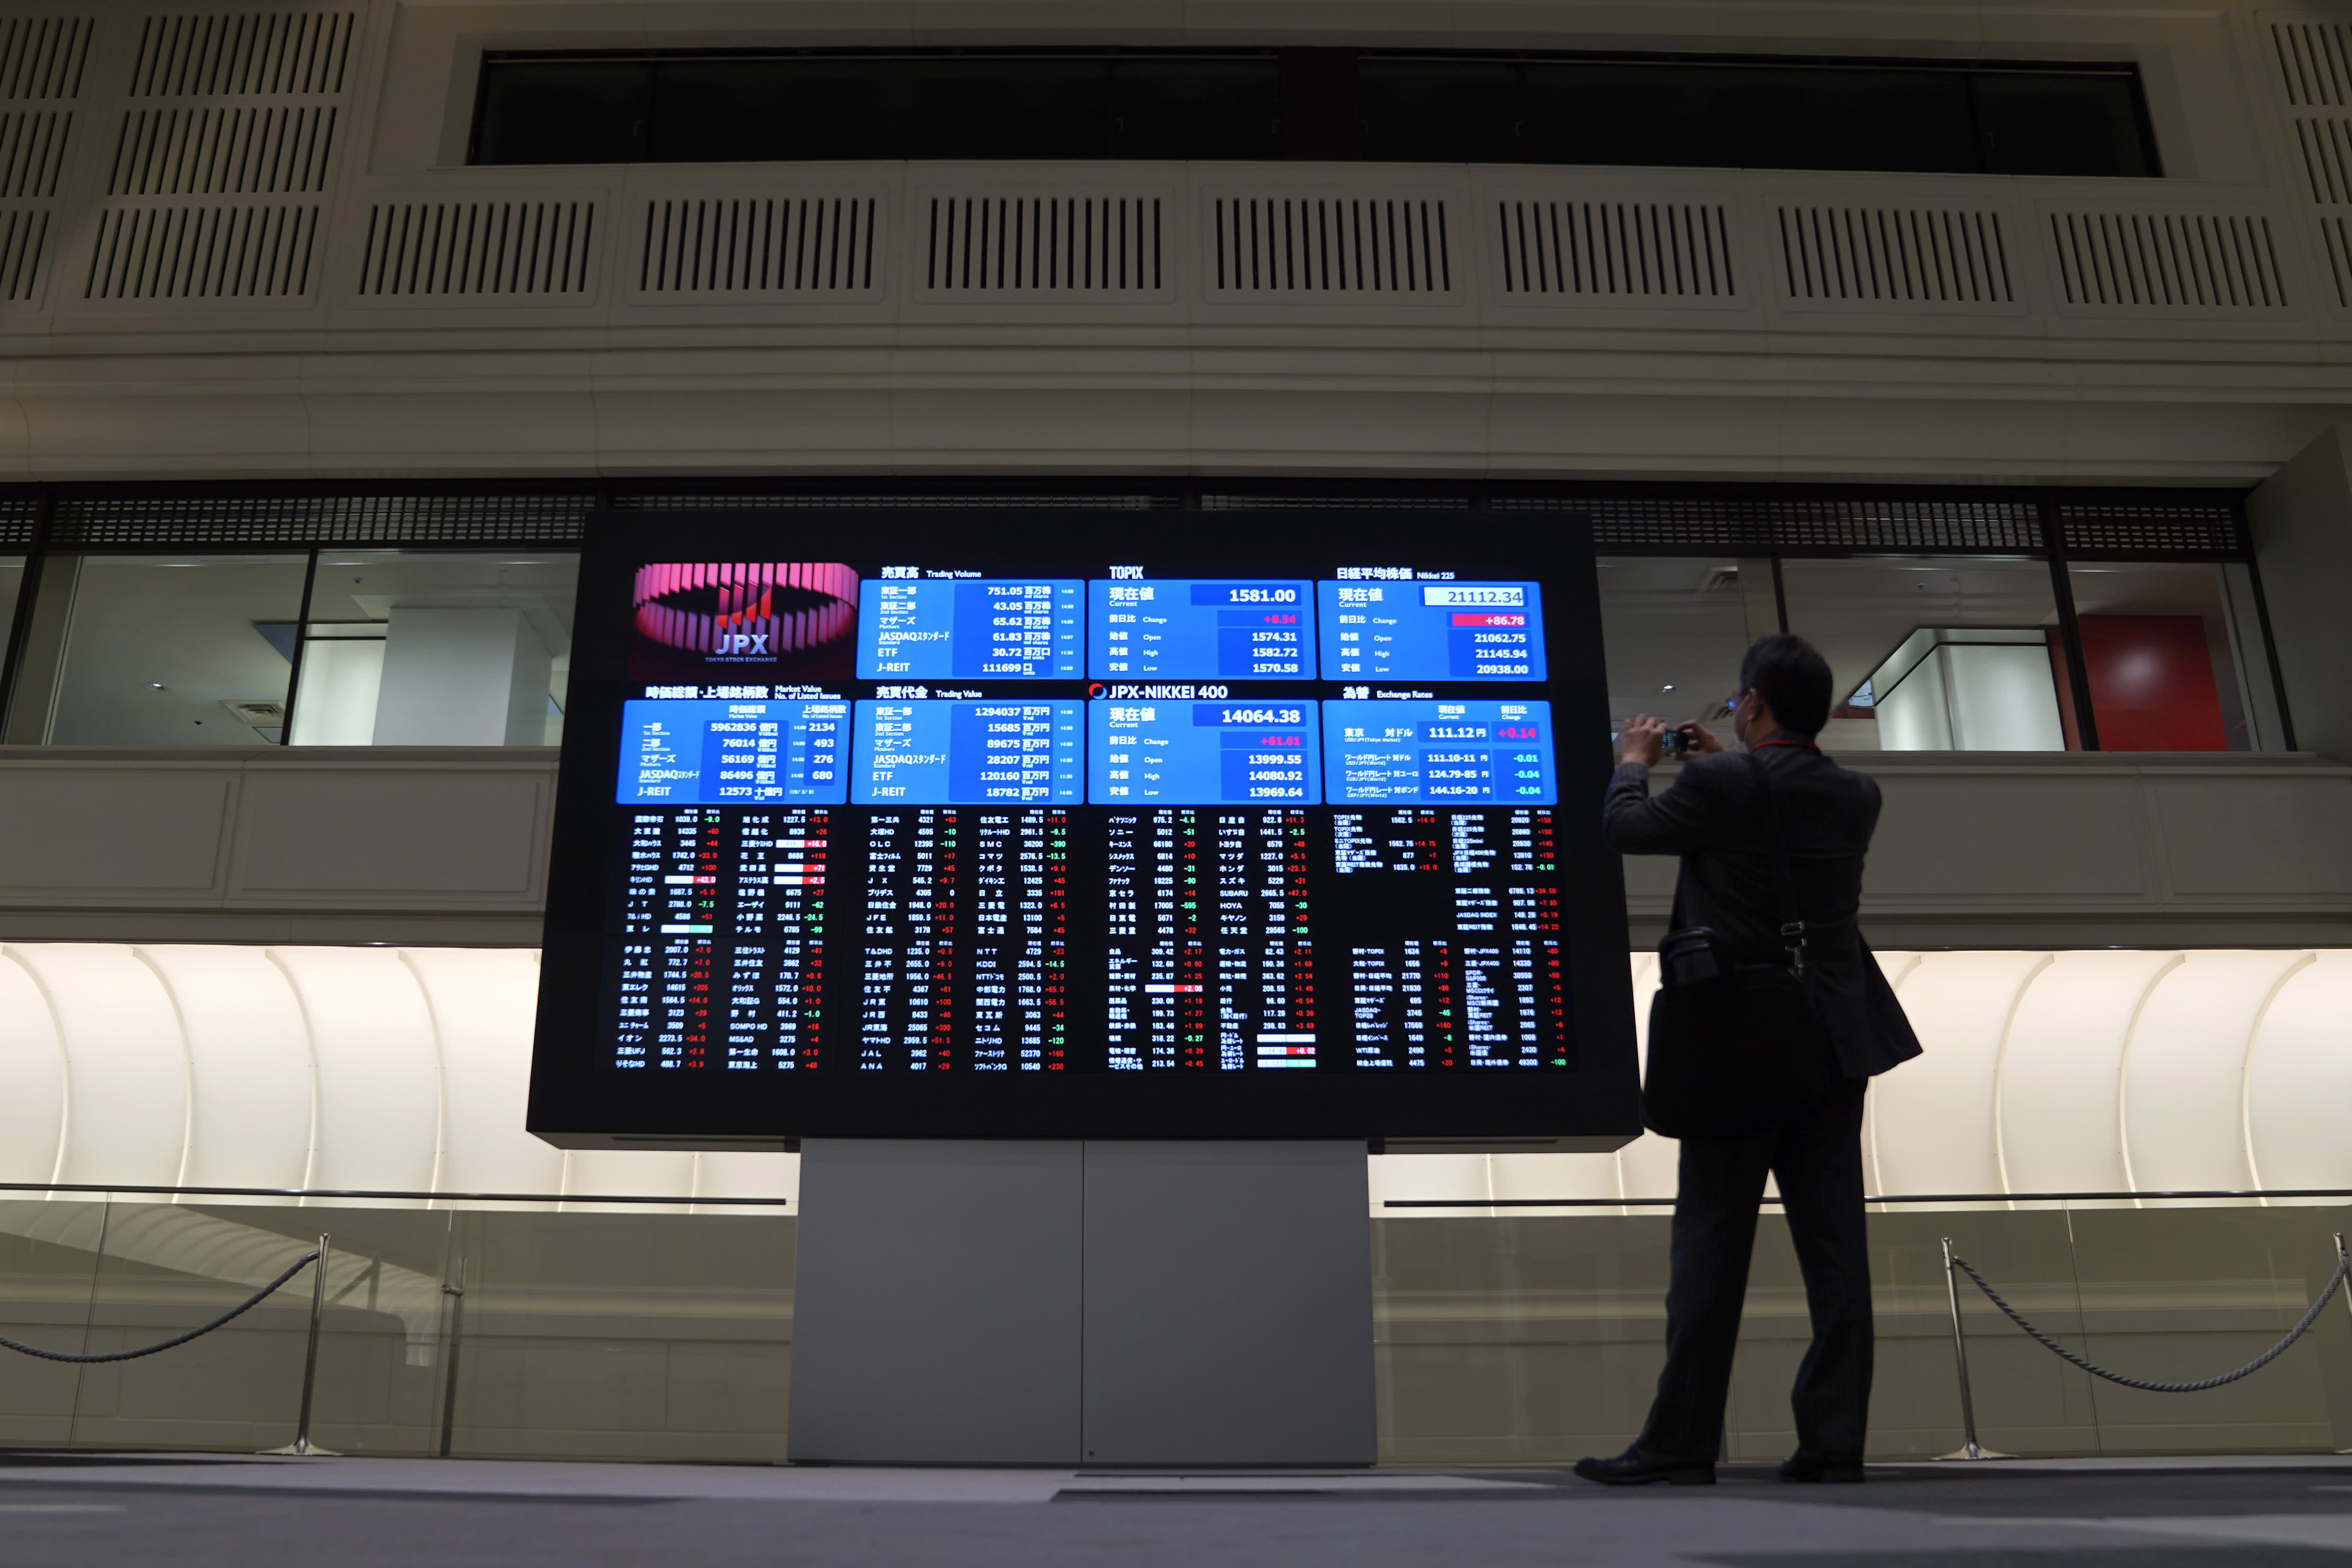 Japan stocks jump as S&P 500 surges to record high despite virus fears